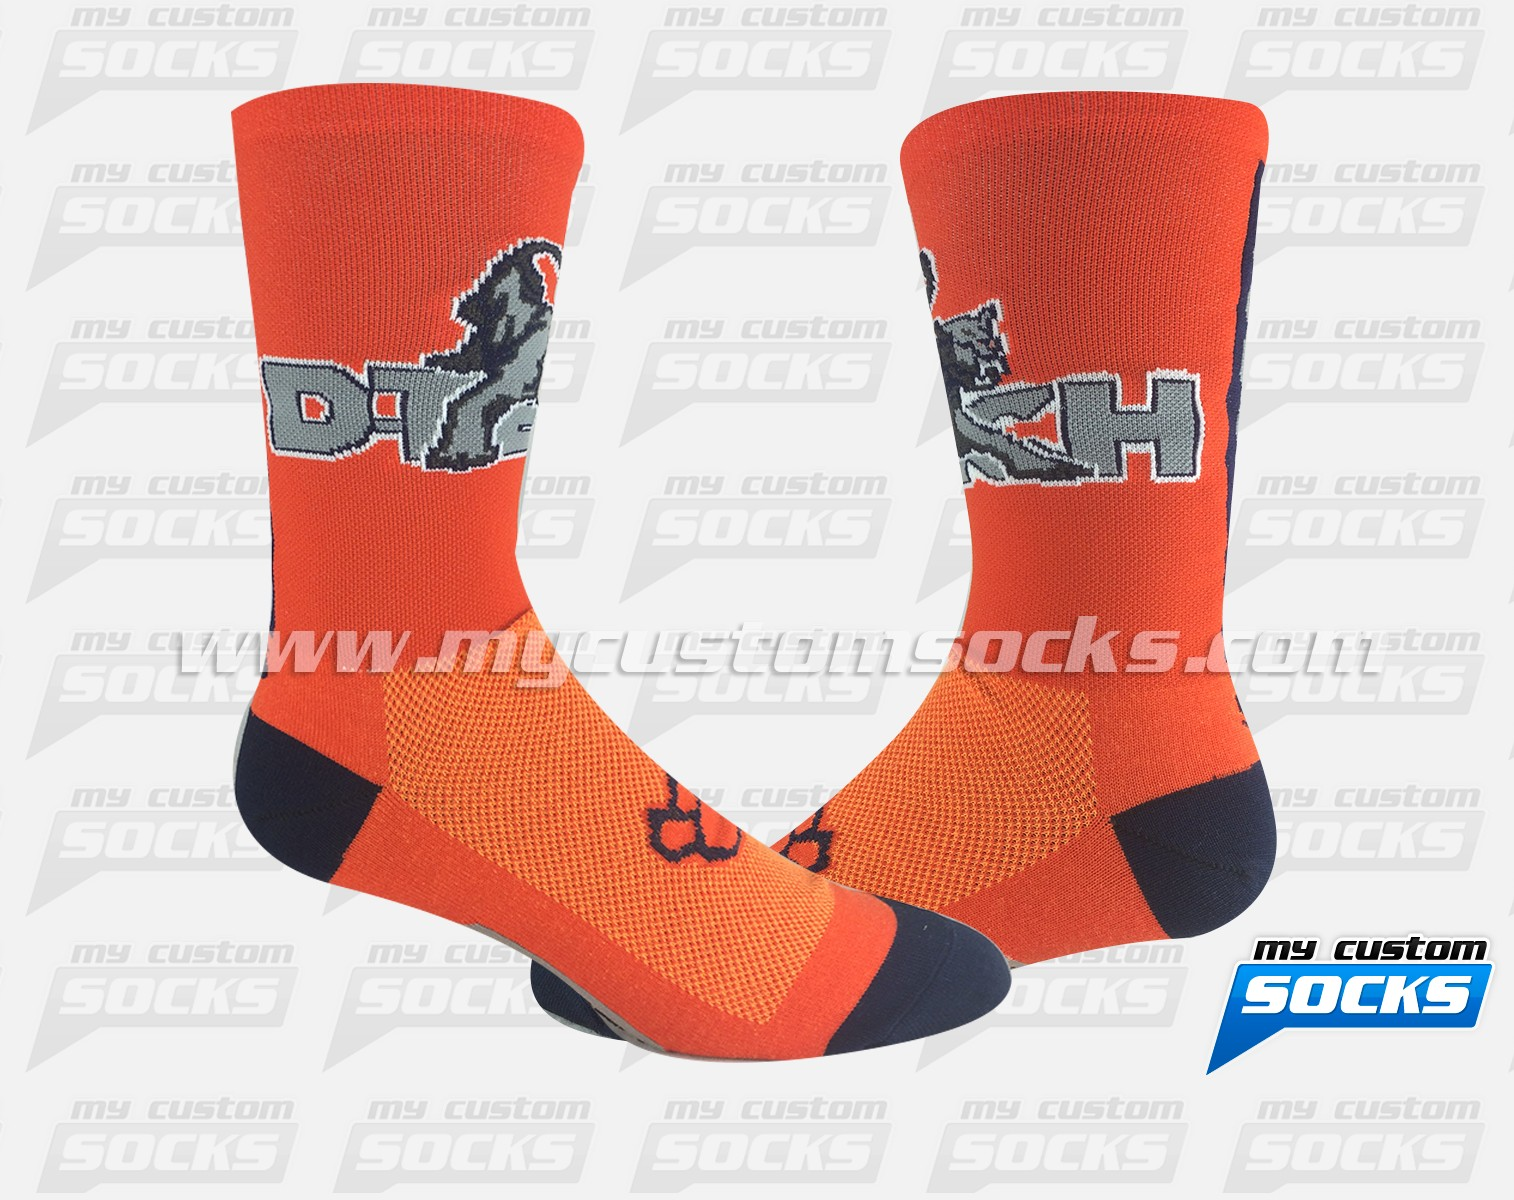 D-Tech Cougars in Orange